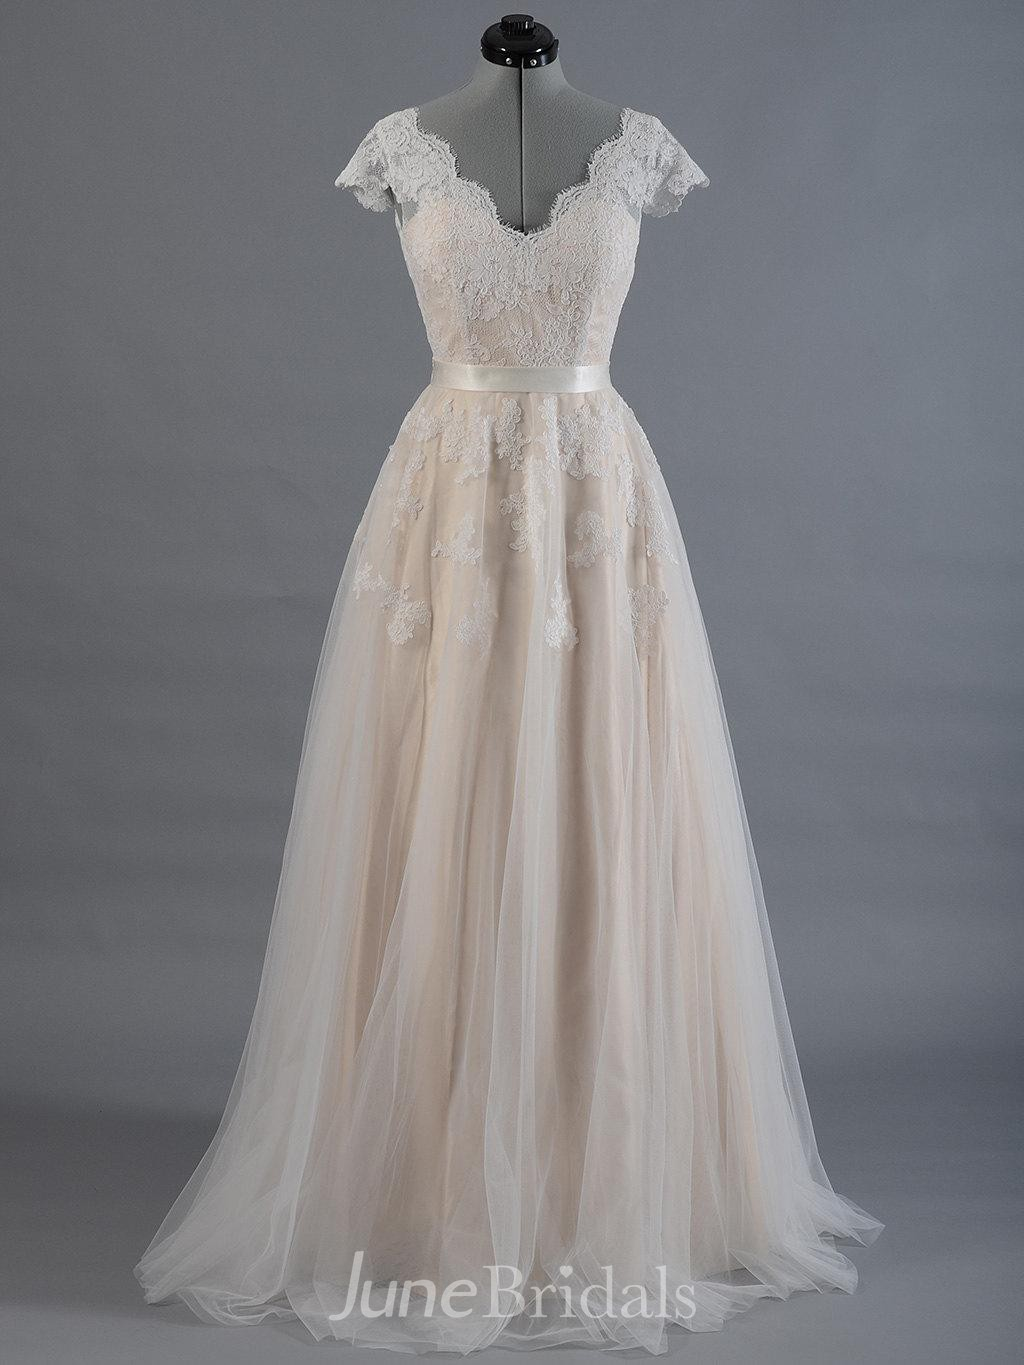 c0d2a4d11688 Cap Sleeve V-Neck Lace Wedding Dress With Tulle Skirt and V-Back - June  Bridals